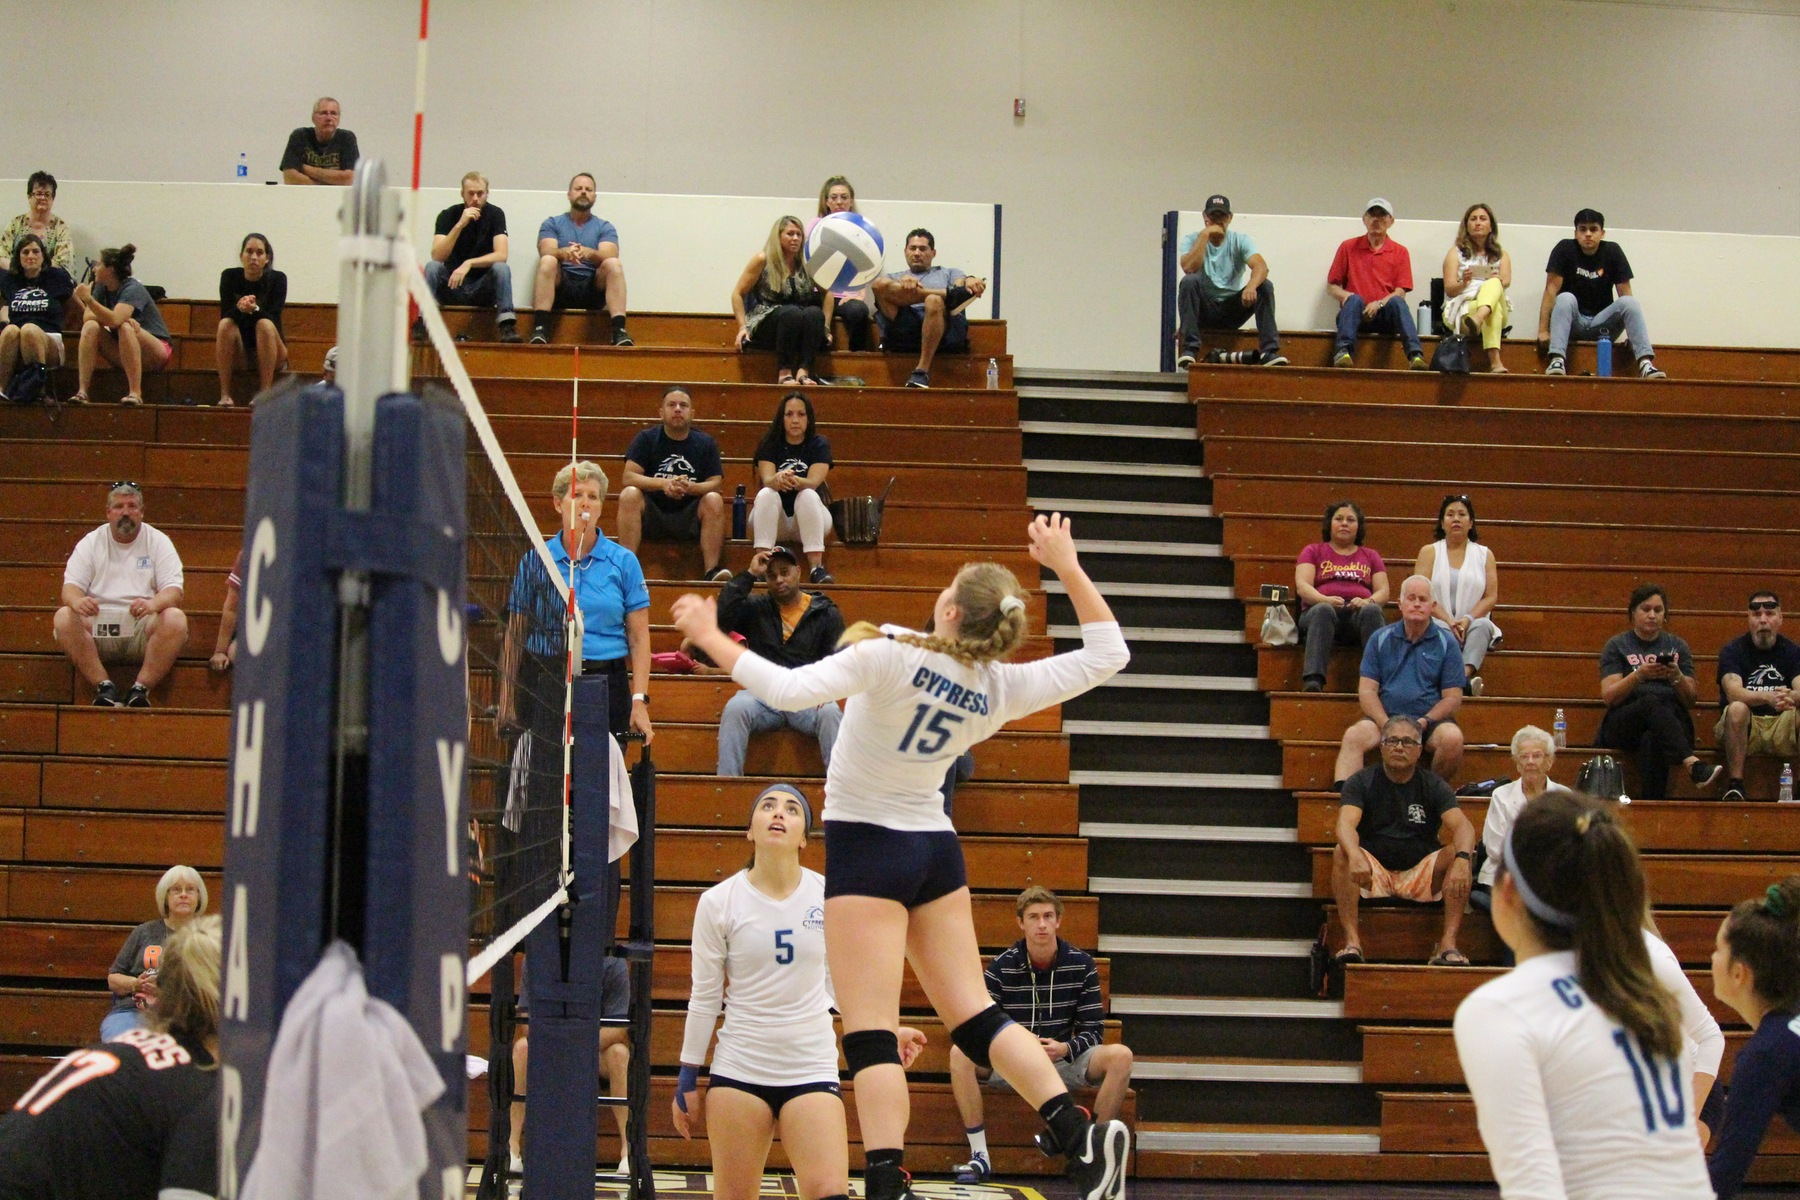 Women's Volleyball, Mary Hicks, Commits to San Diego Christian College